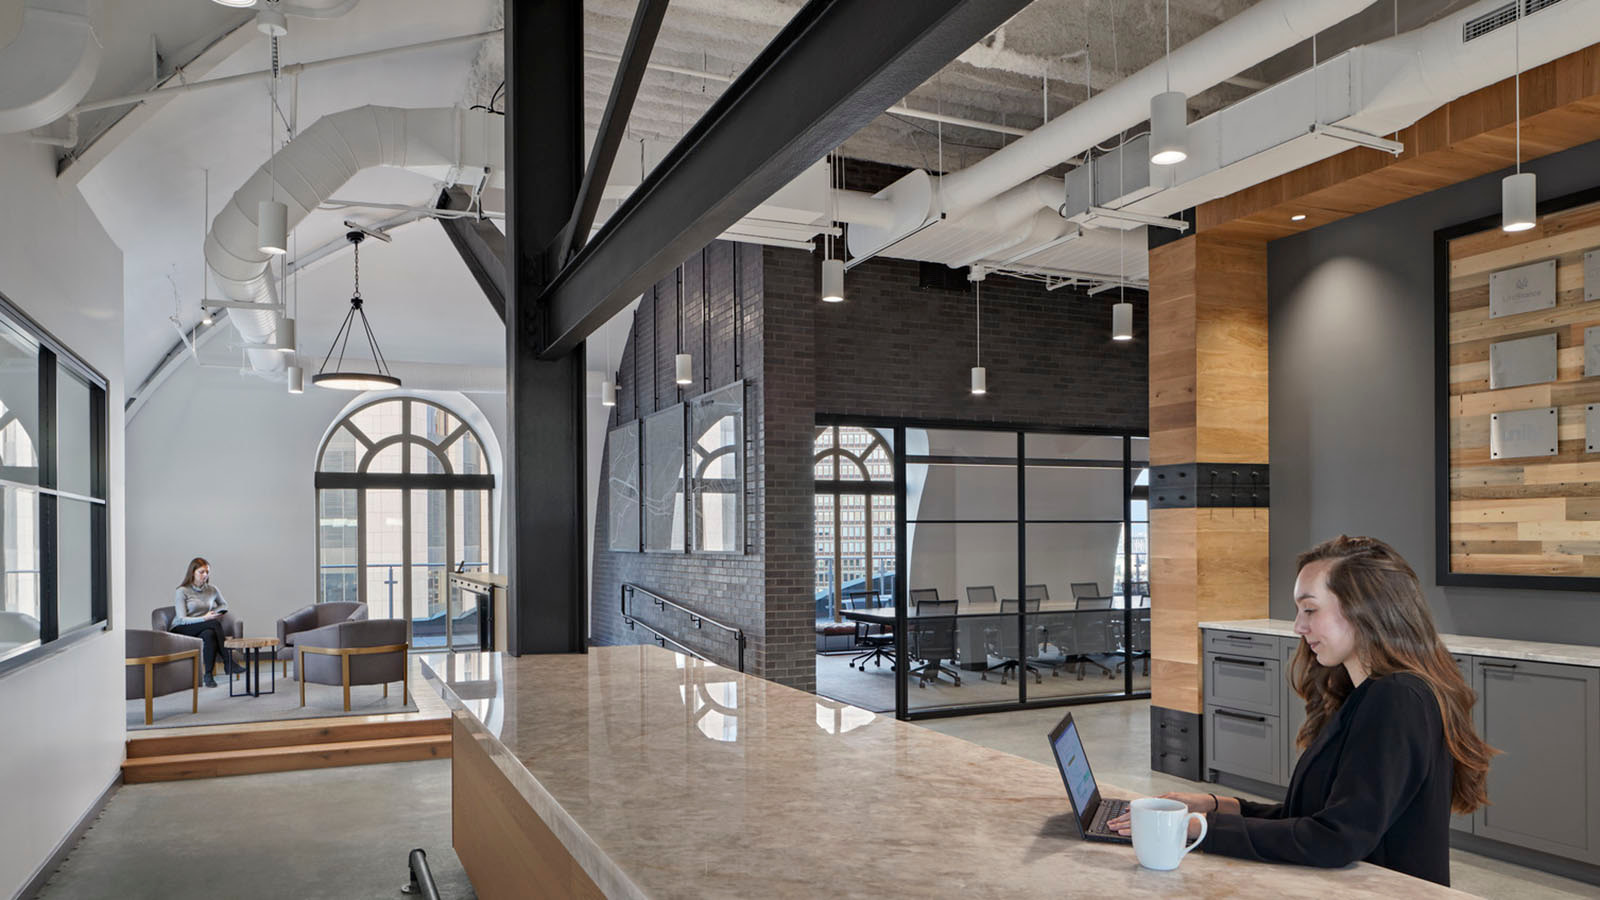 Silversmith meeting spaces